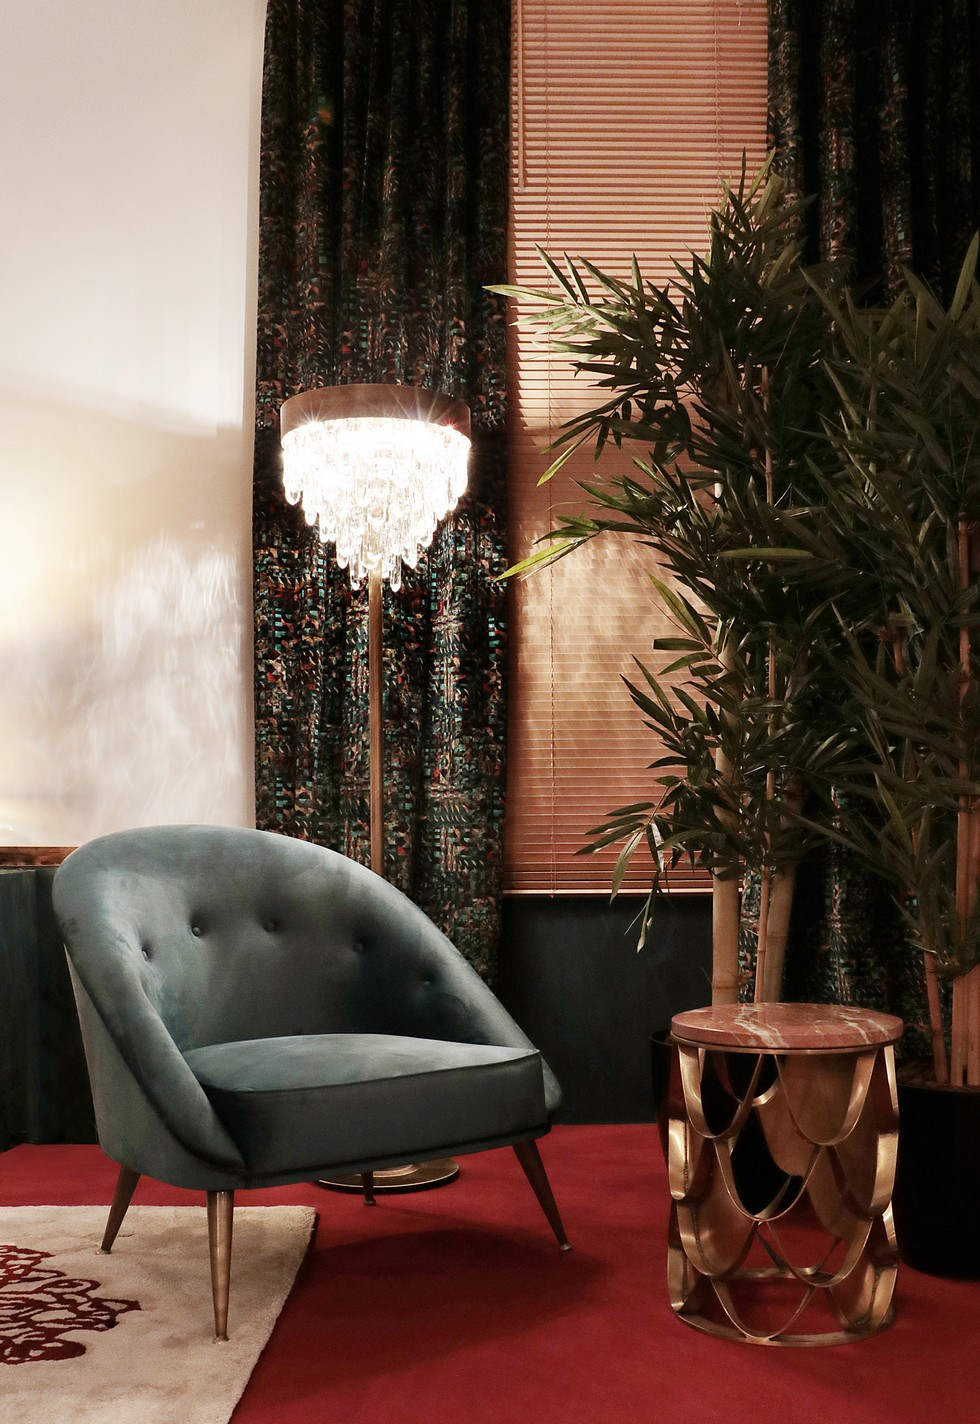 Salone del mobile 2017 design trends at hall 1 and 3 for Latest window treatments 2017